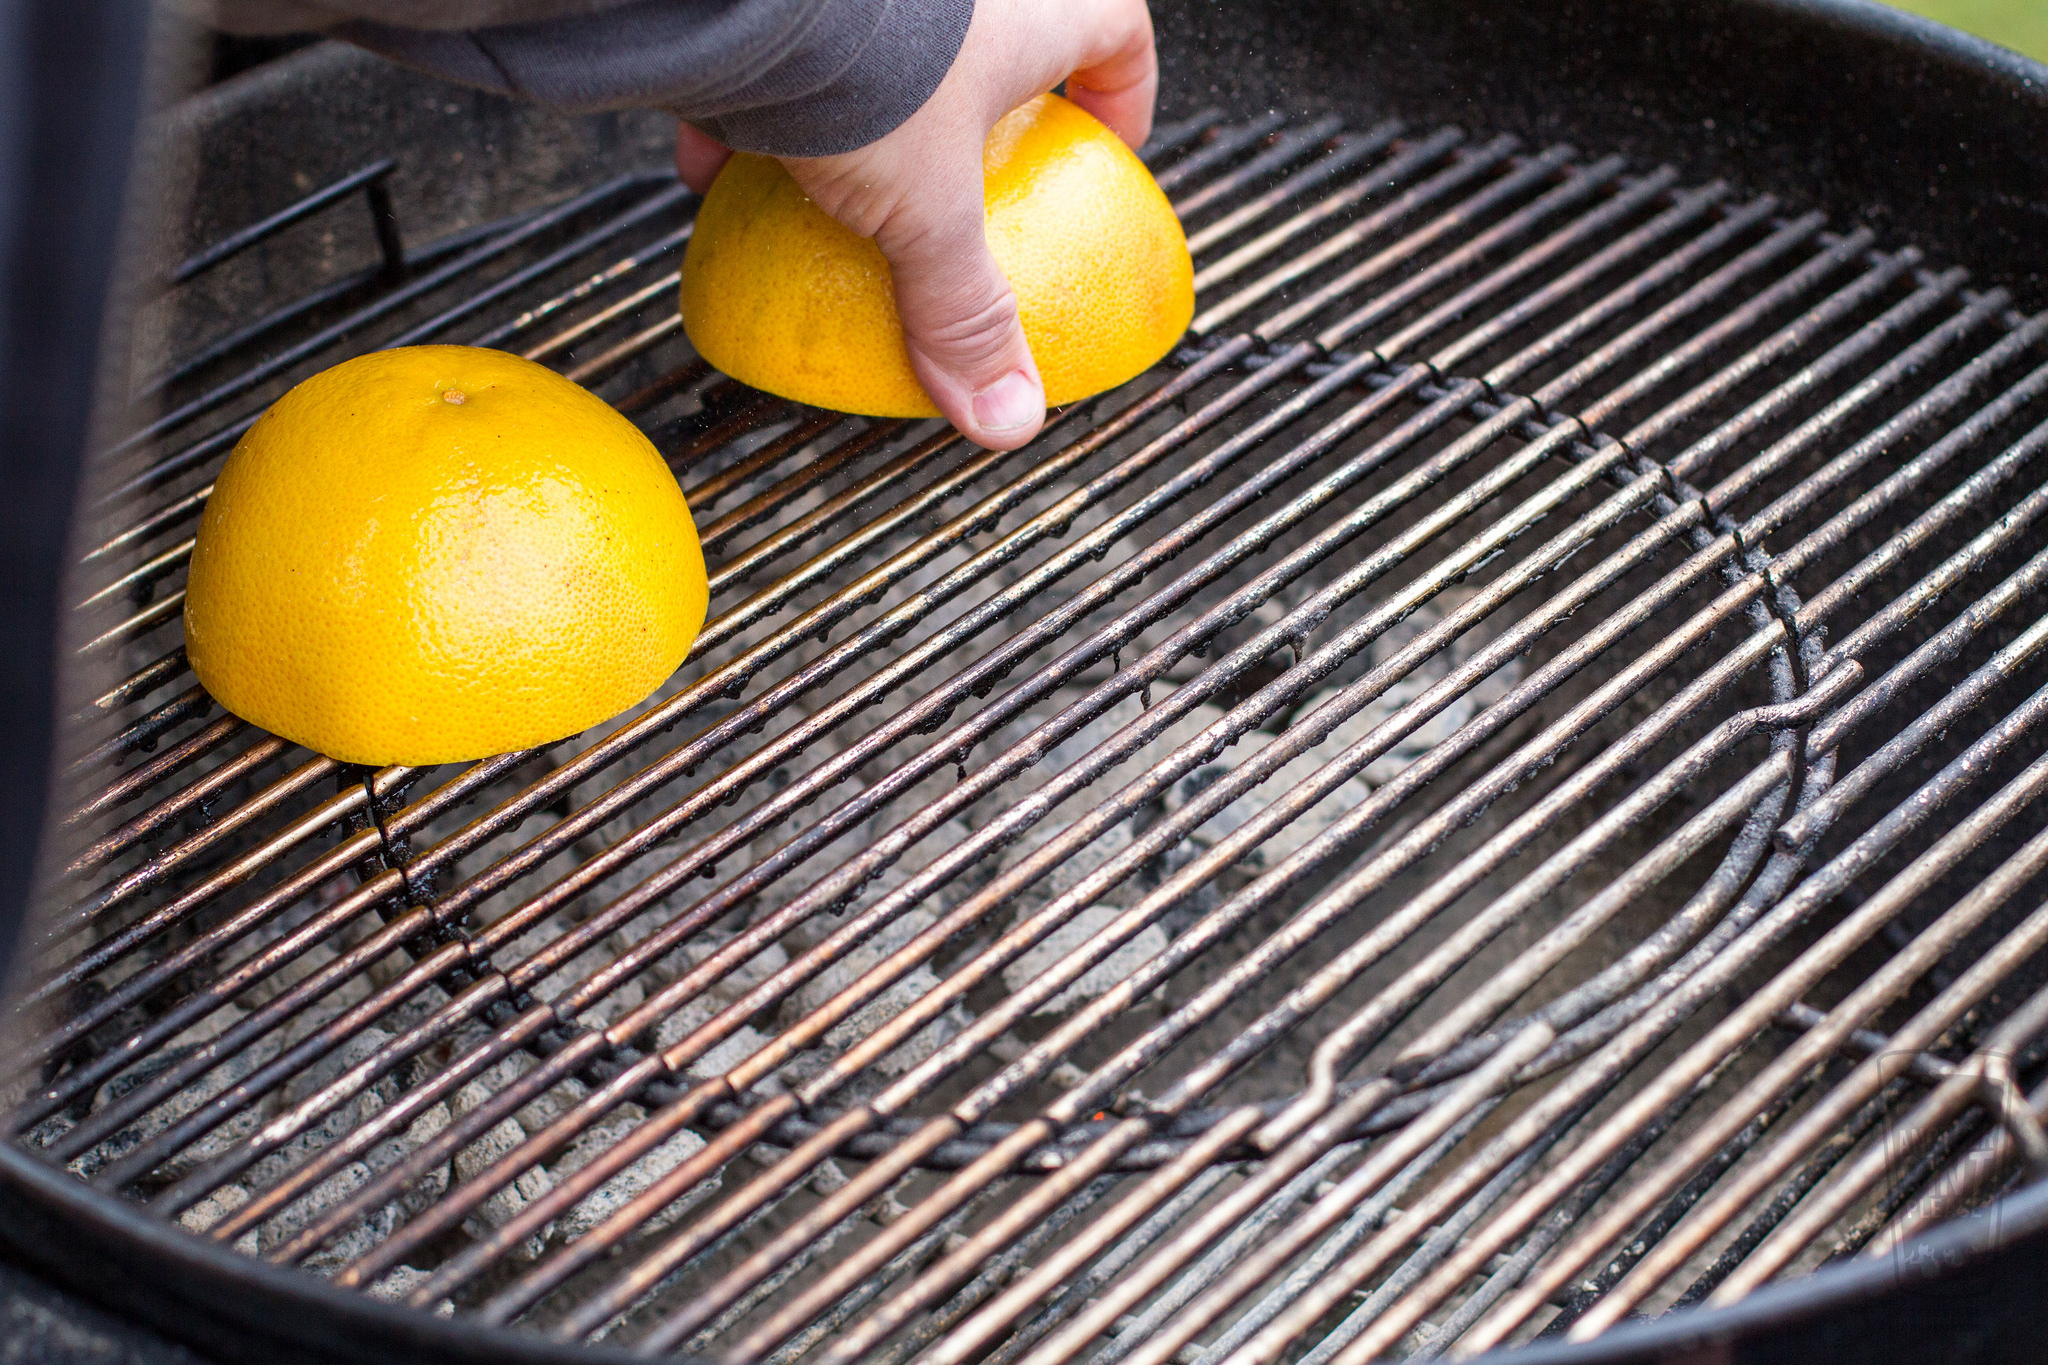 grapefruit grilled on weber kettle.jpg